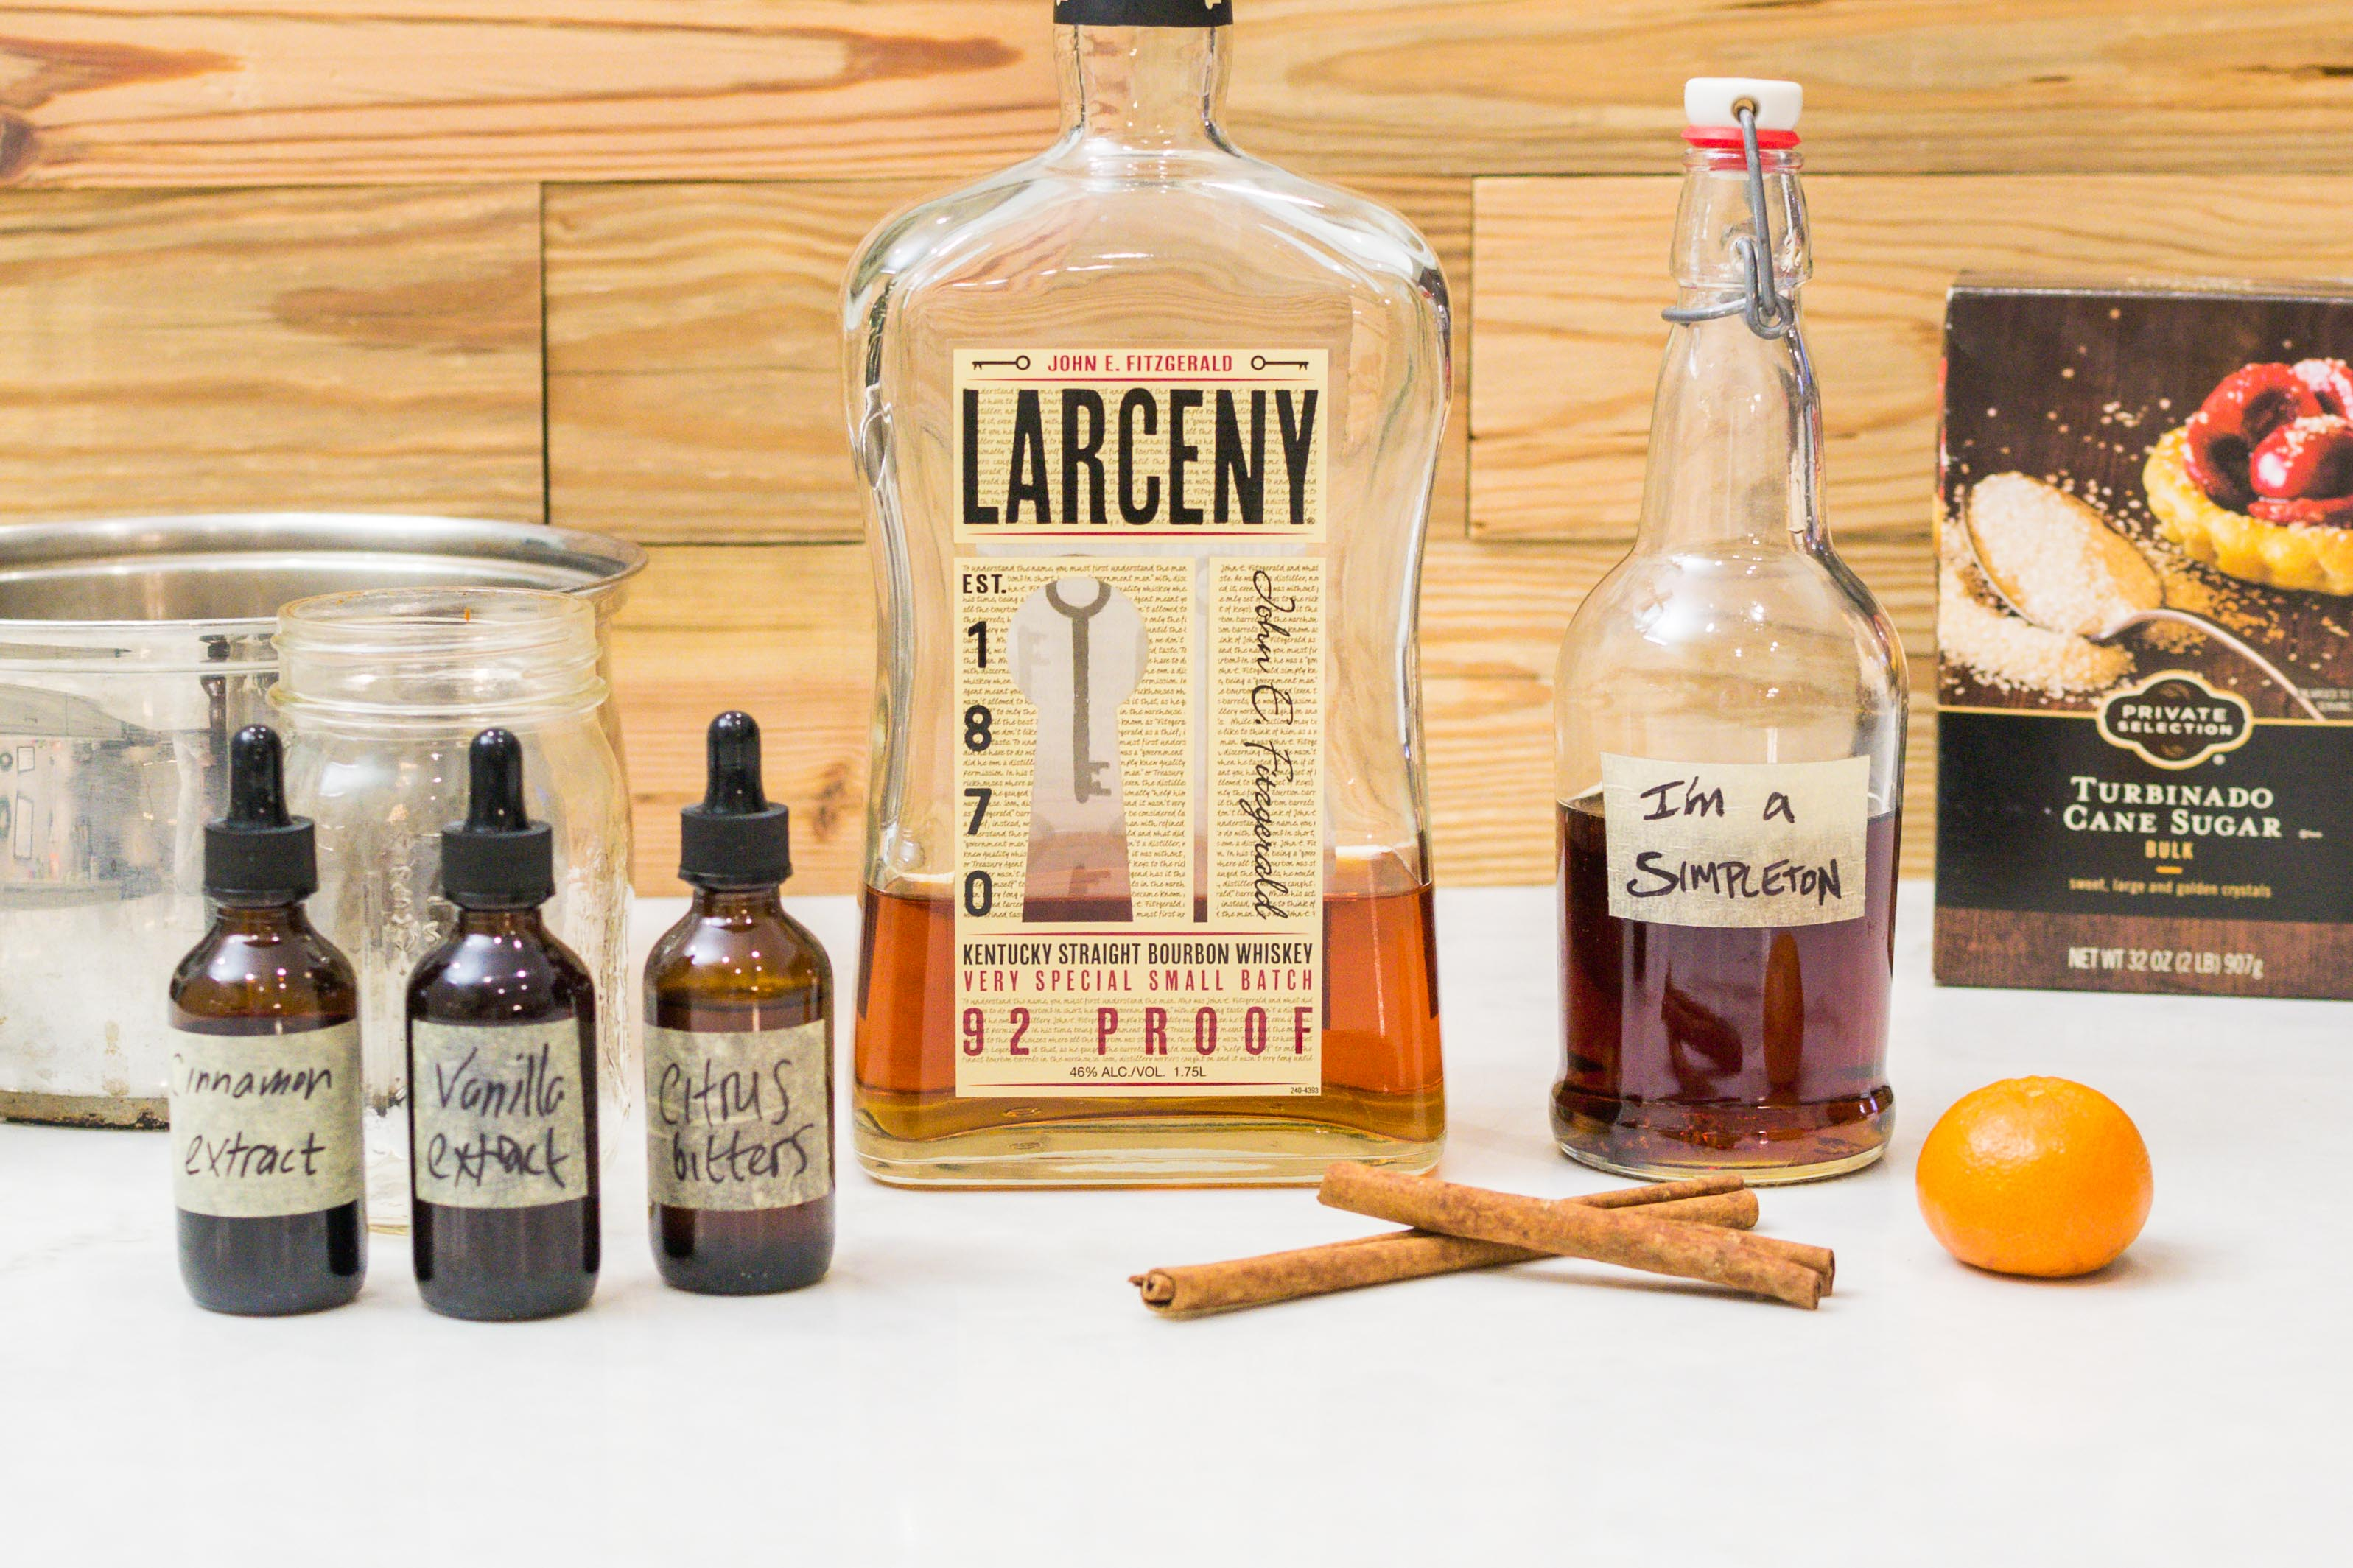 Smoky, Winter-Spiced Old-Fashioned Cocktail Recipe with Homemade Bitters